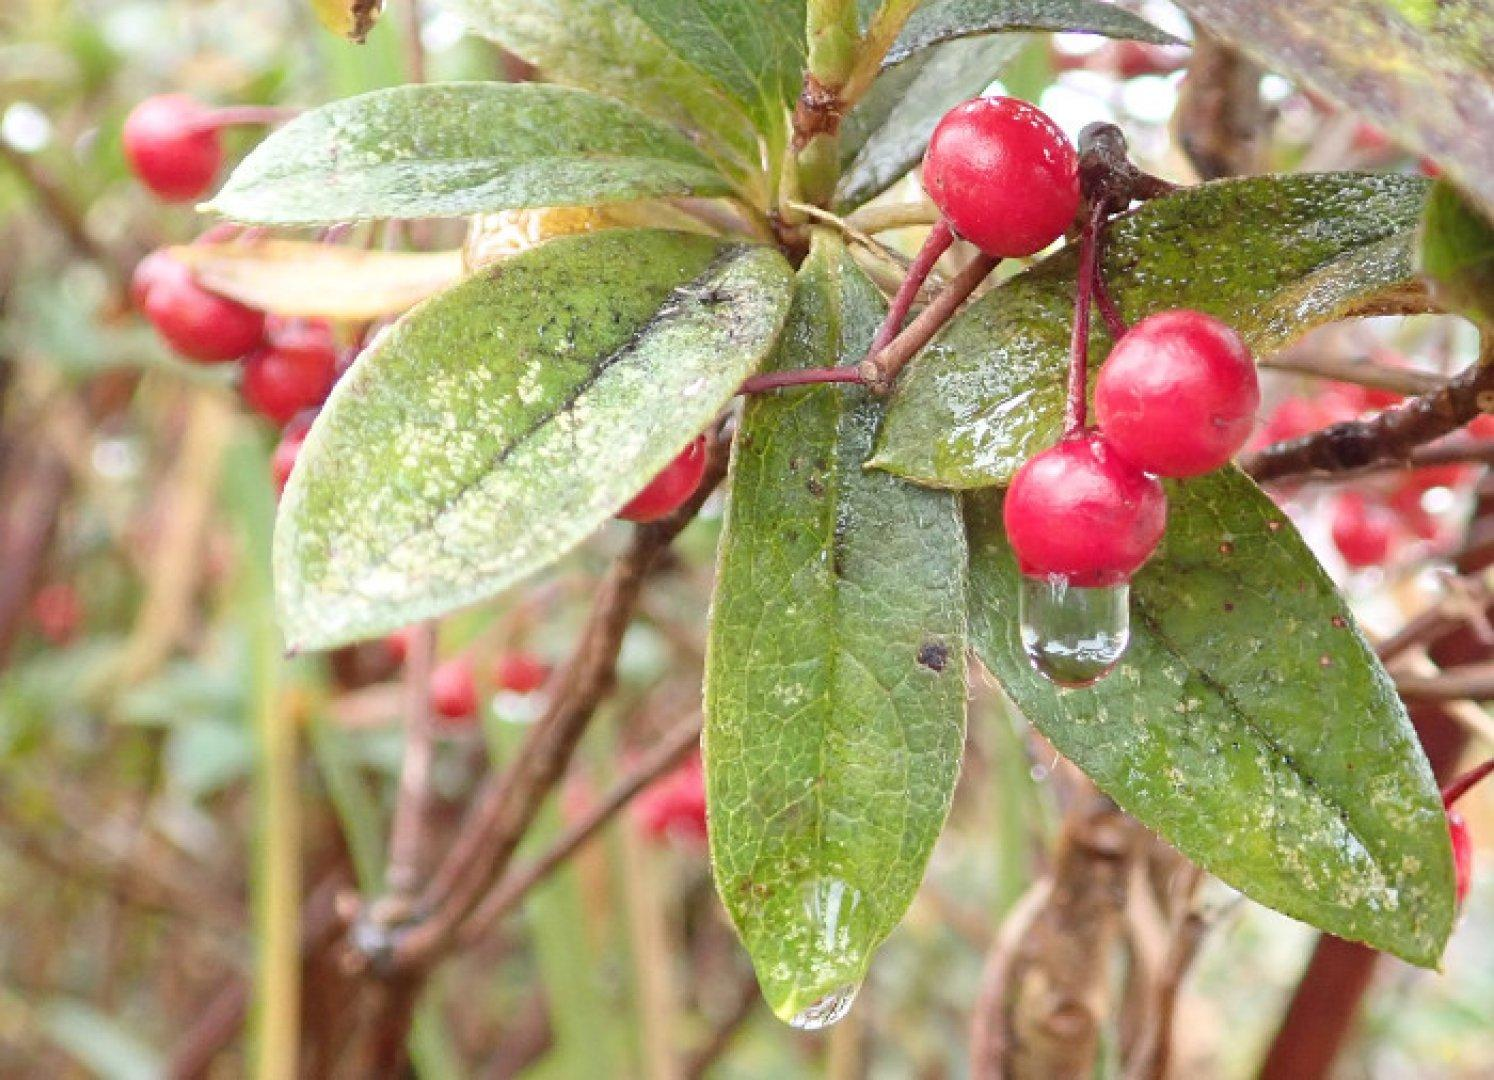 Rain on Berries 1